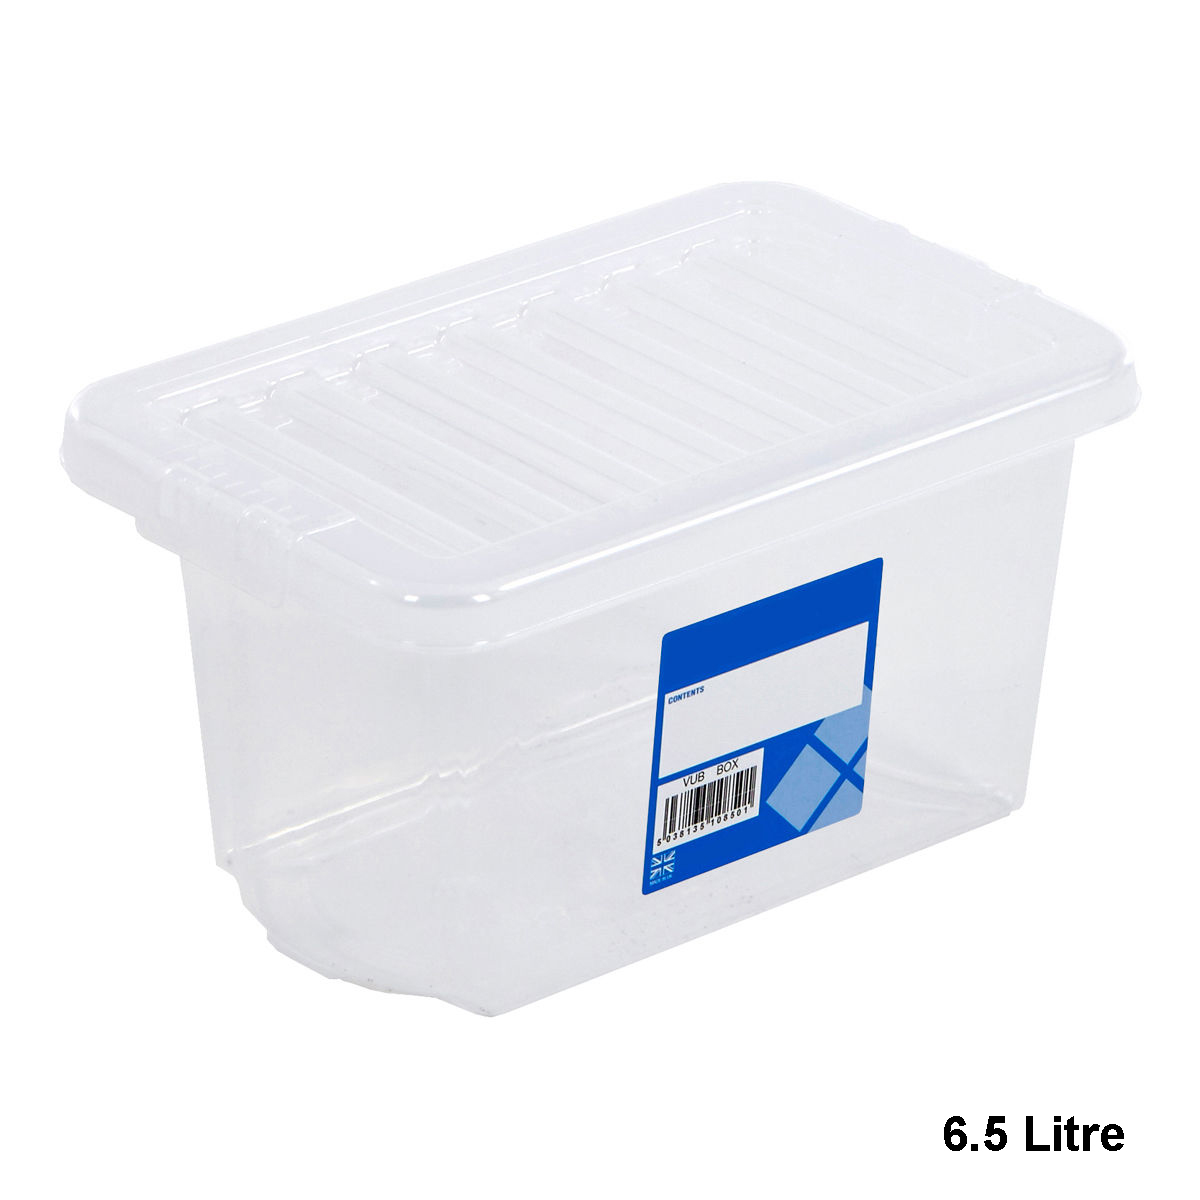 Plastic Containers With Lids Clear Plastic Storage Boxes Box Containers With Lids